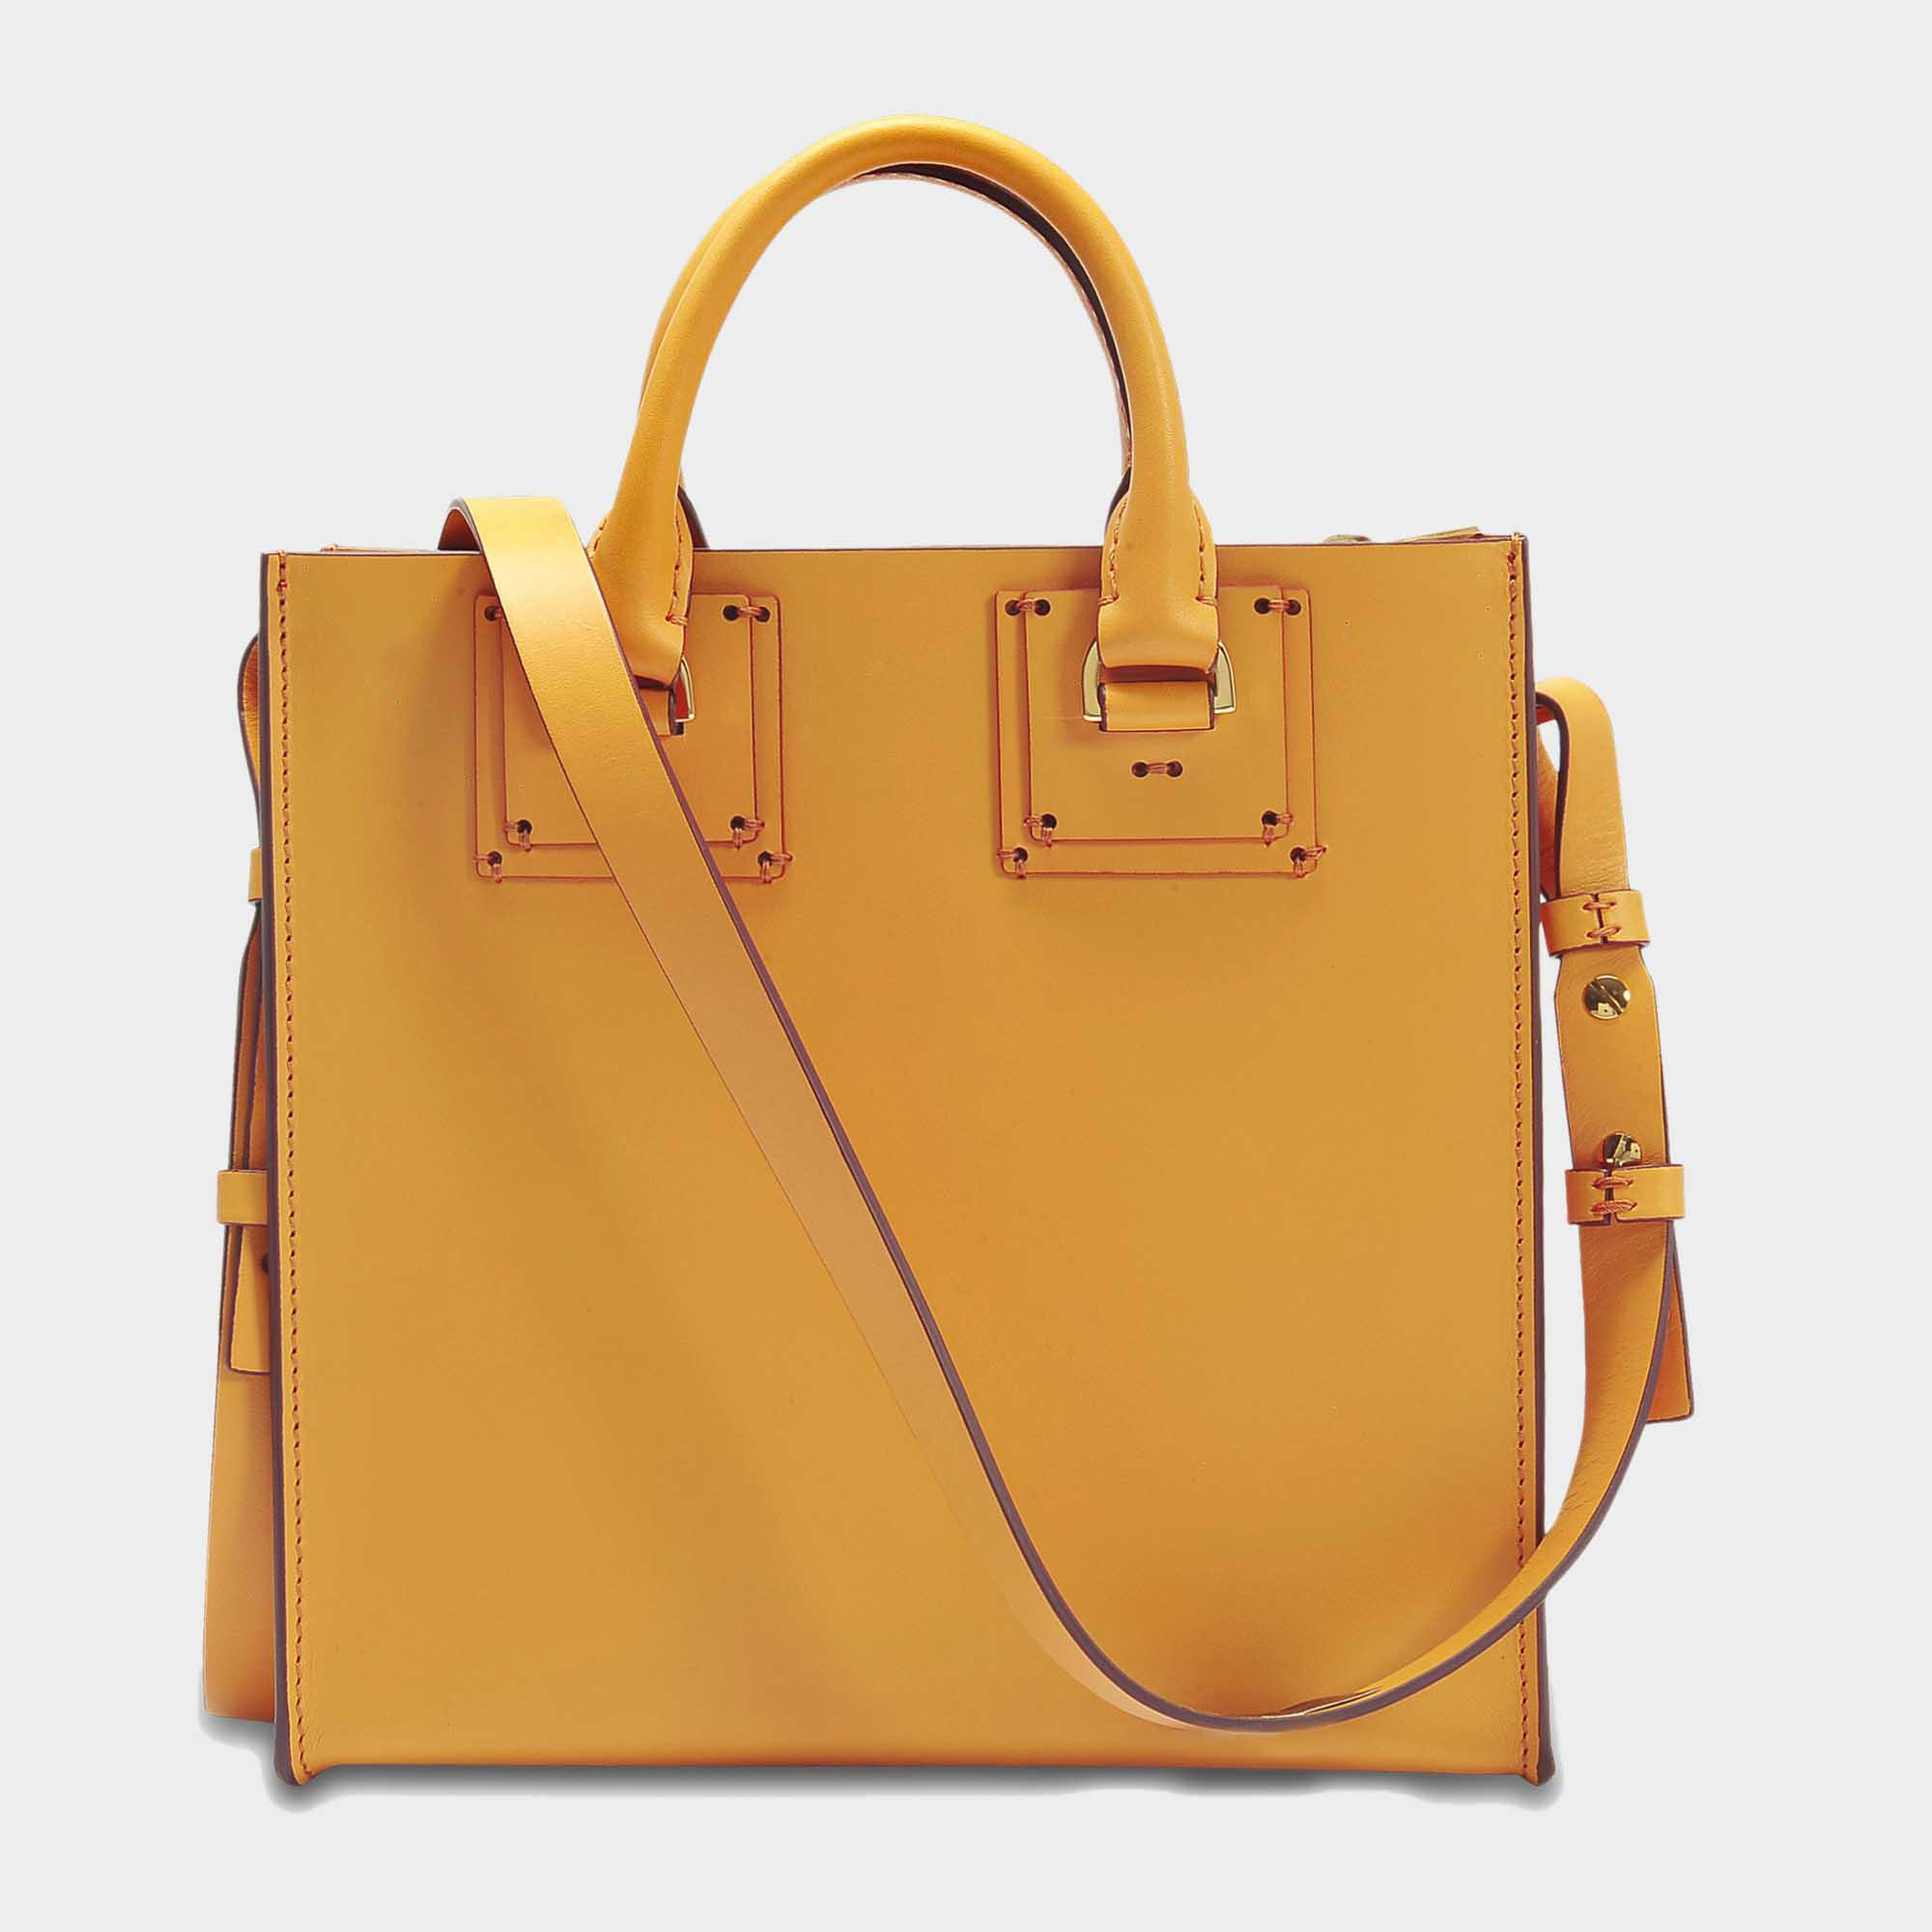 Sophie Hulme Square Albion Tote Bag In Dark Butter Cowhide Leather